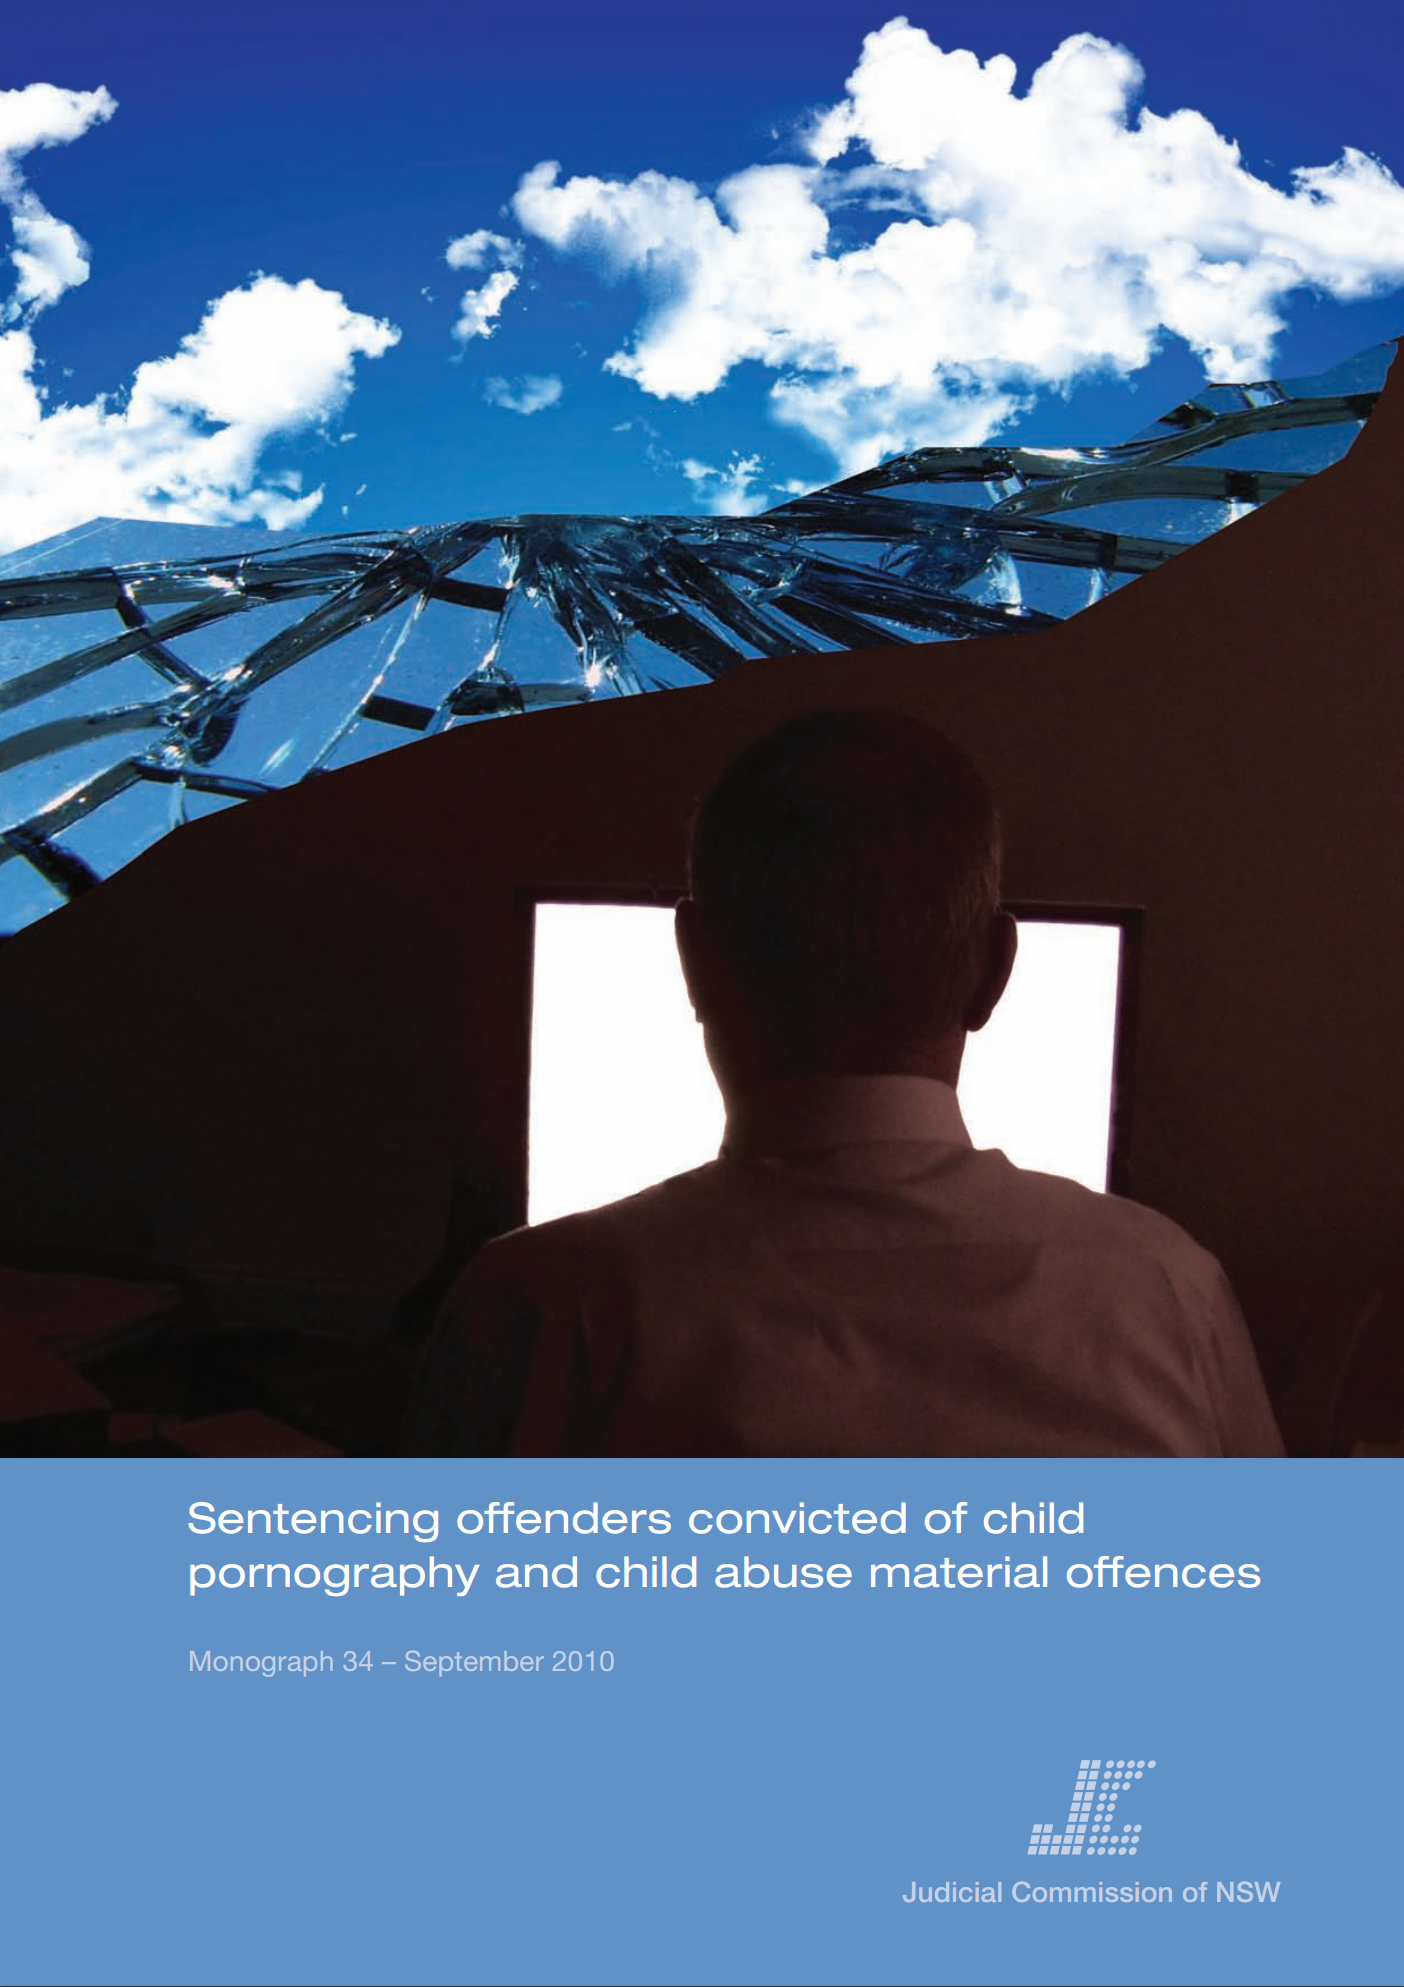 Research Monograph 34 Cover - Sentencing offenders convicted of child pornography and child abuse material offences